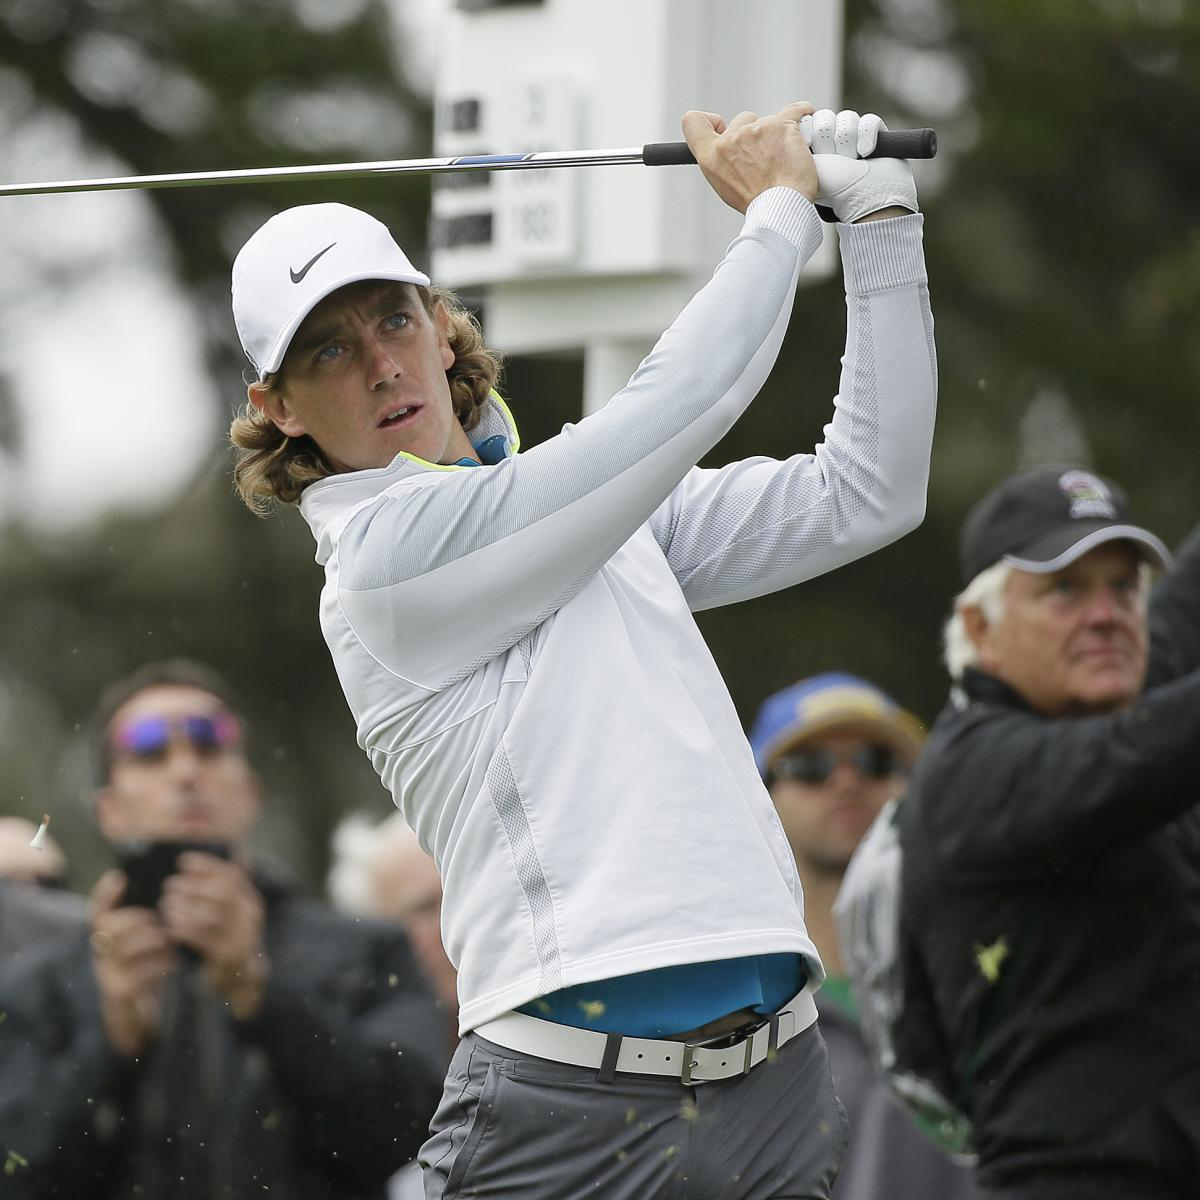 British open field betting nc aiding and abetting